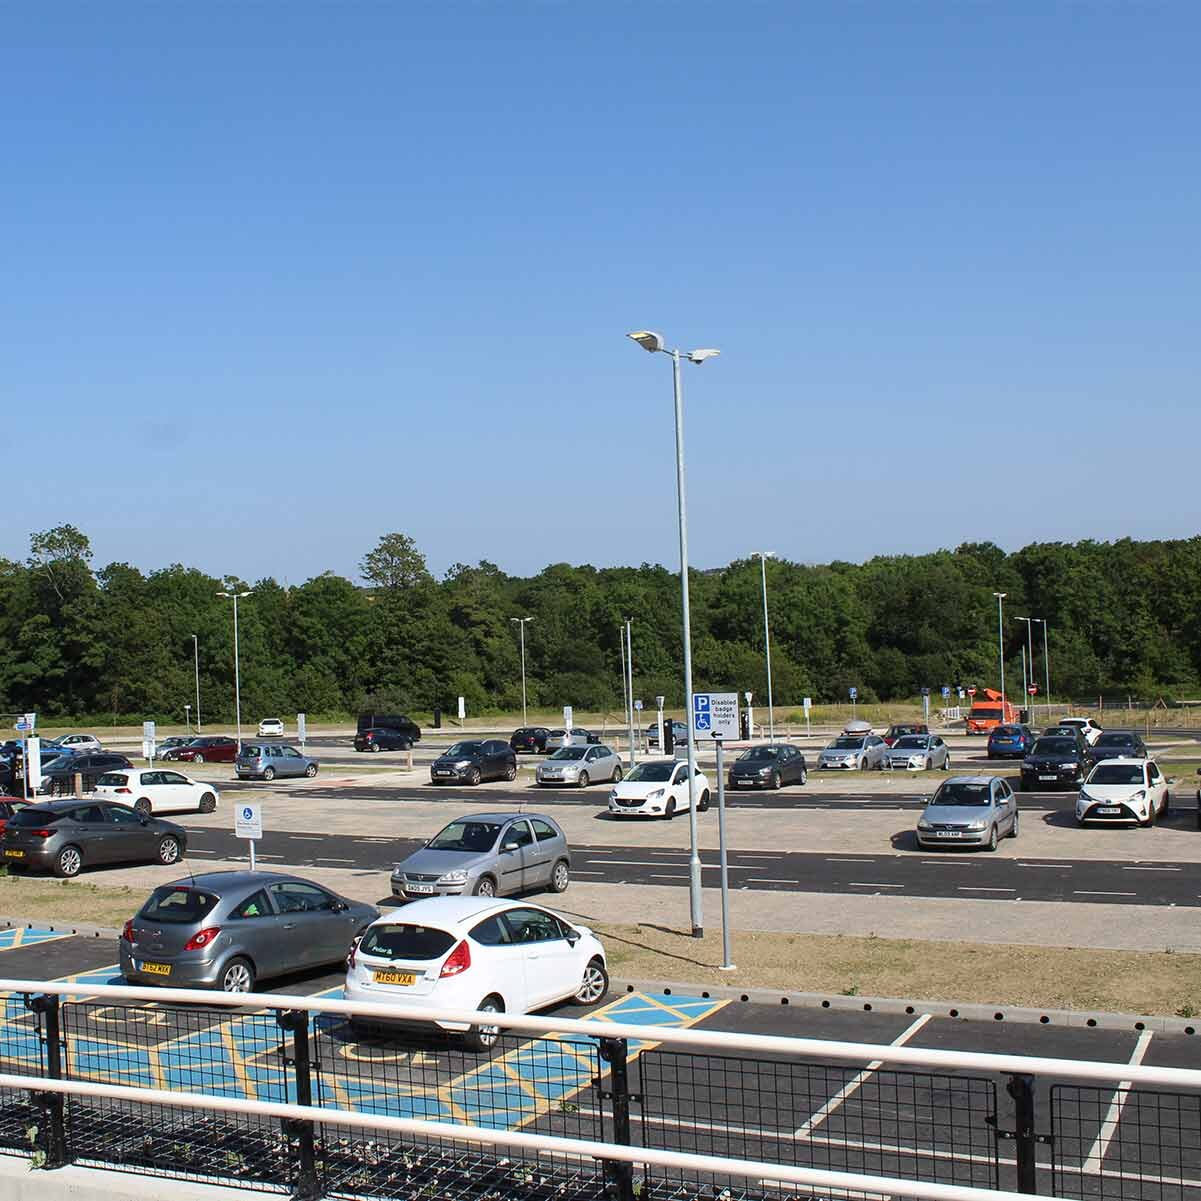 St Erth station south car park